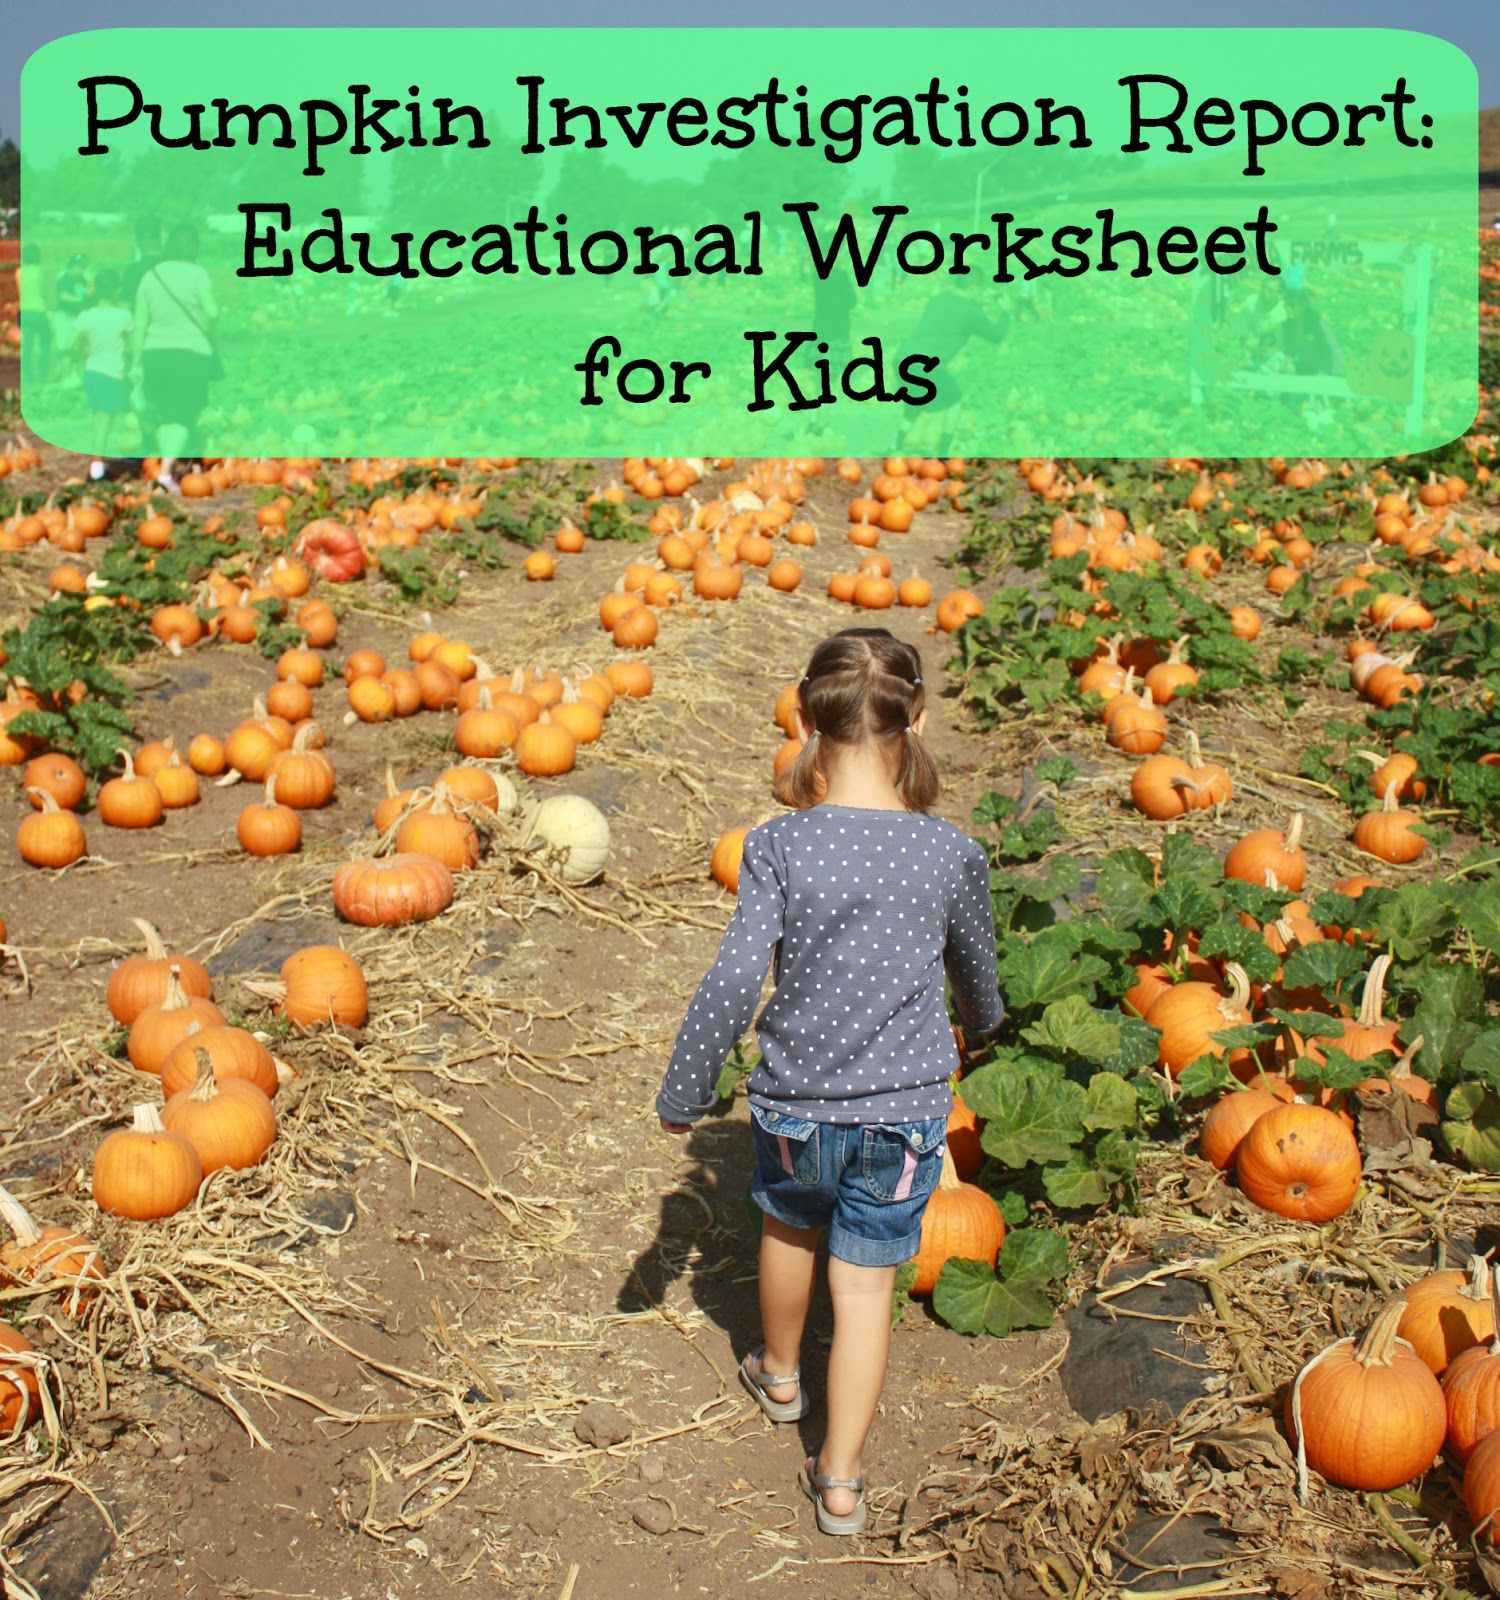 Pumpkin Patch Field Trip Includes Free Educational